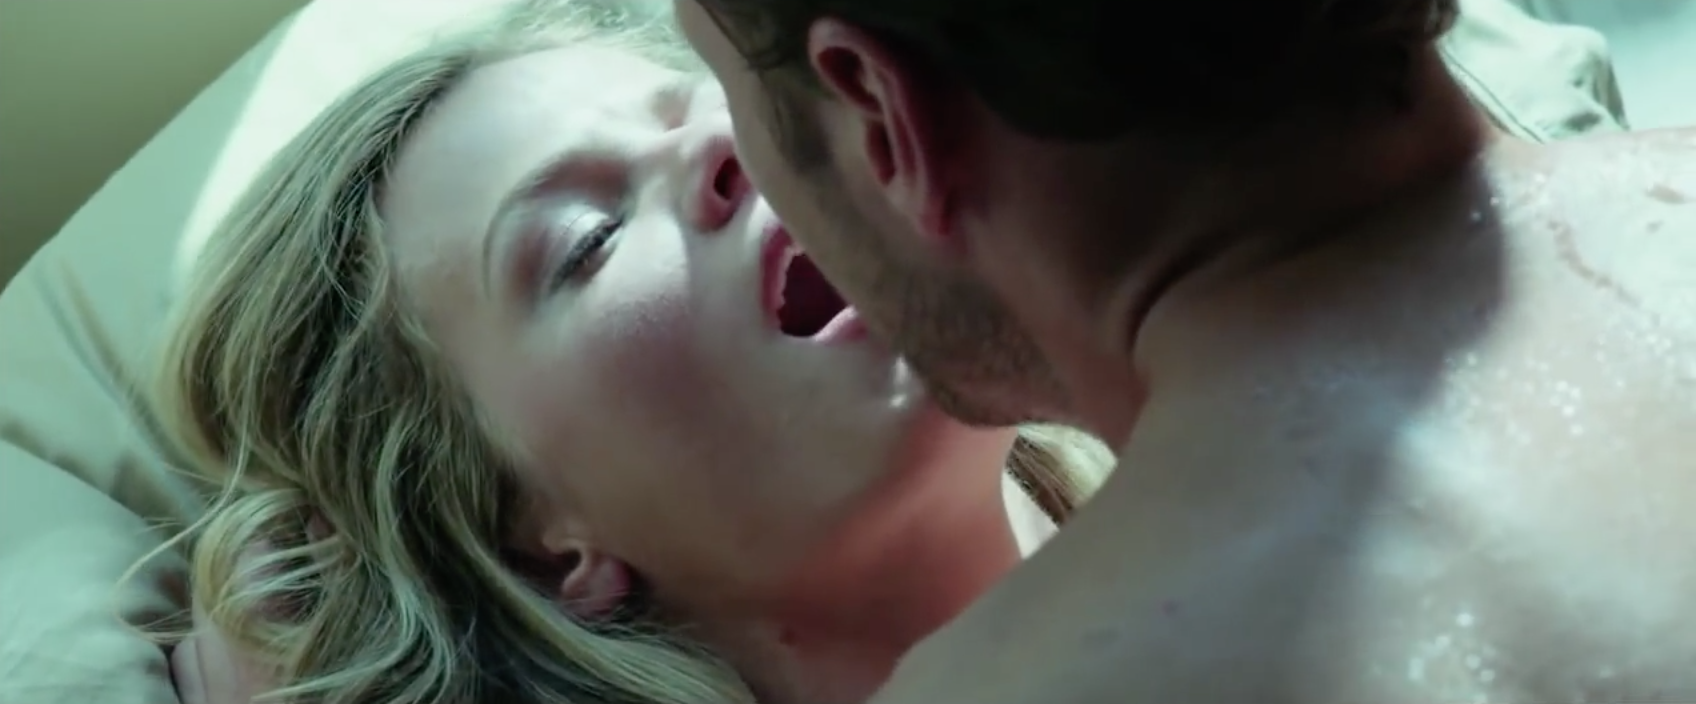 Sex Scene In Movies 100